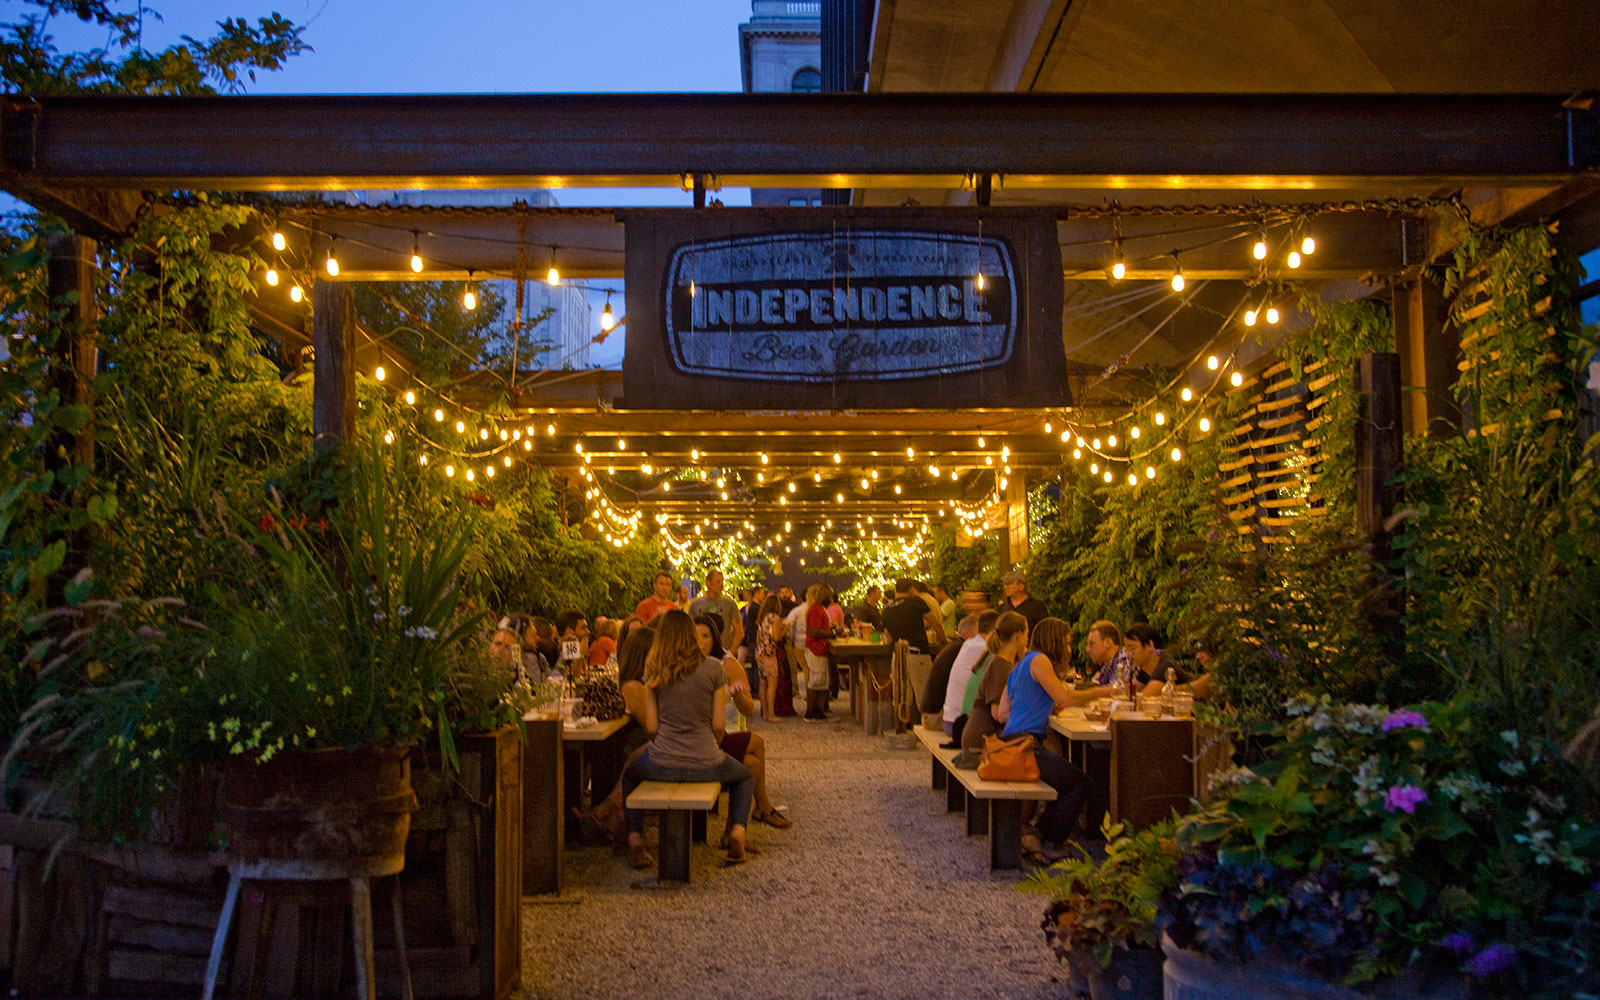 Independence Beer Garden, Philadelphia